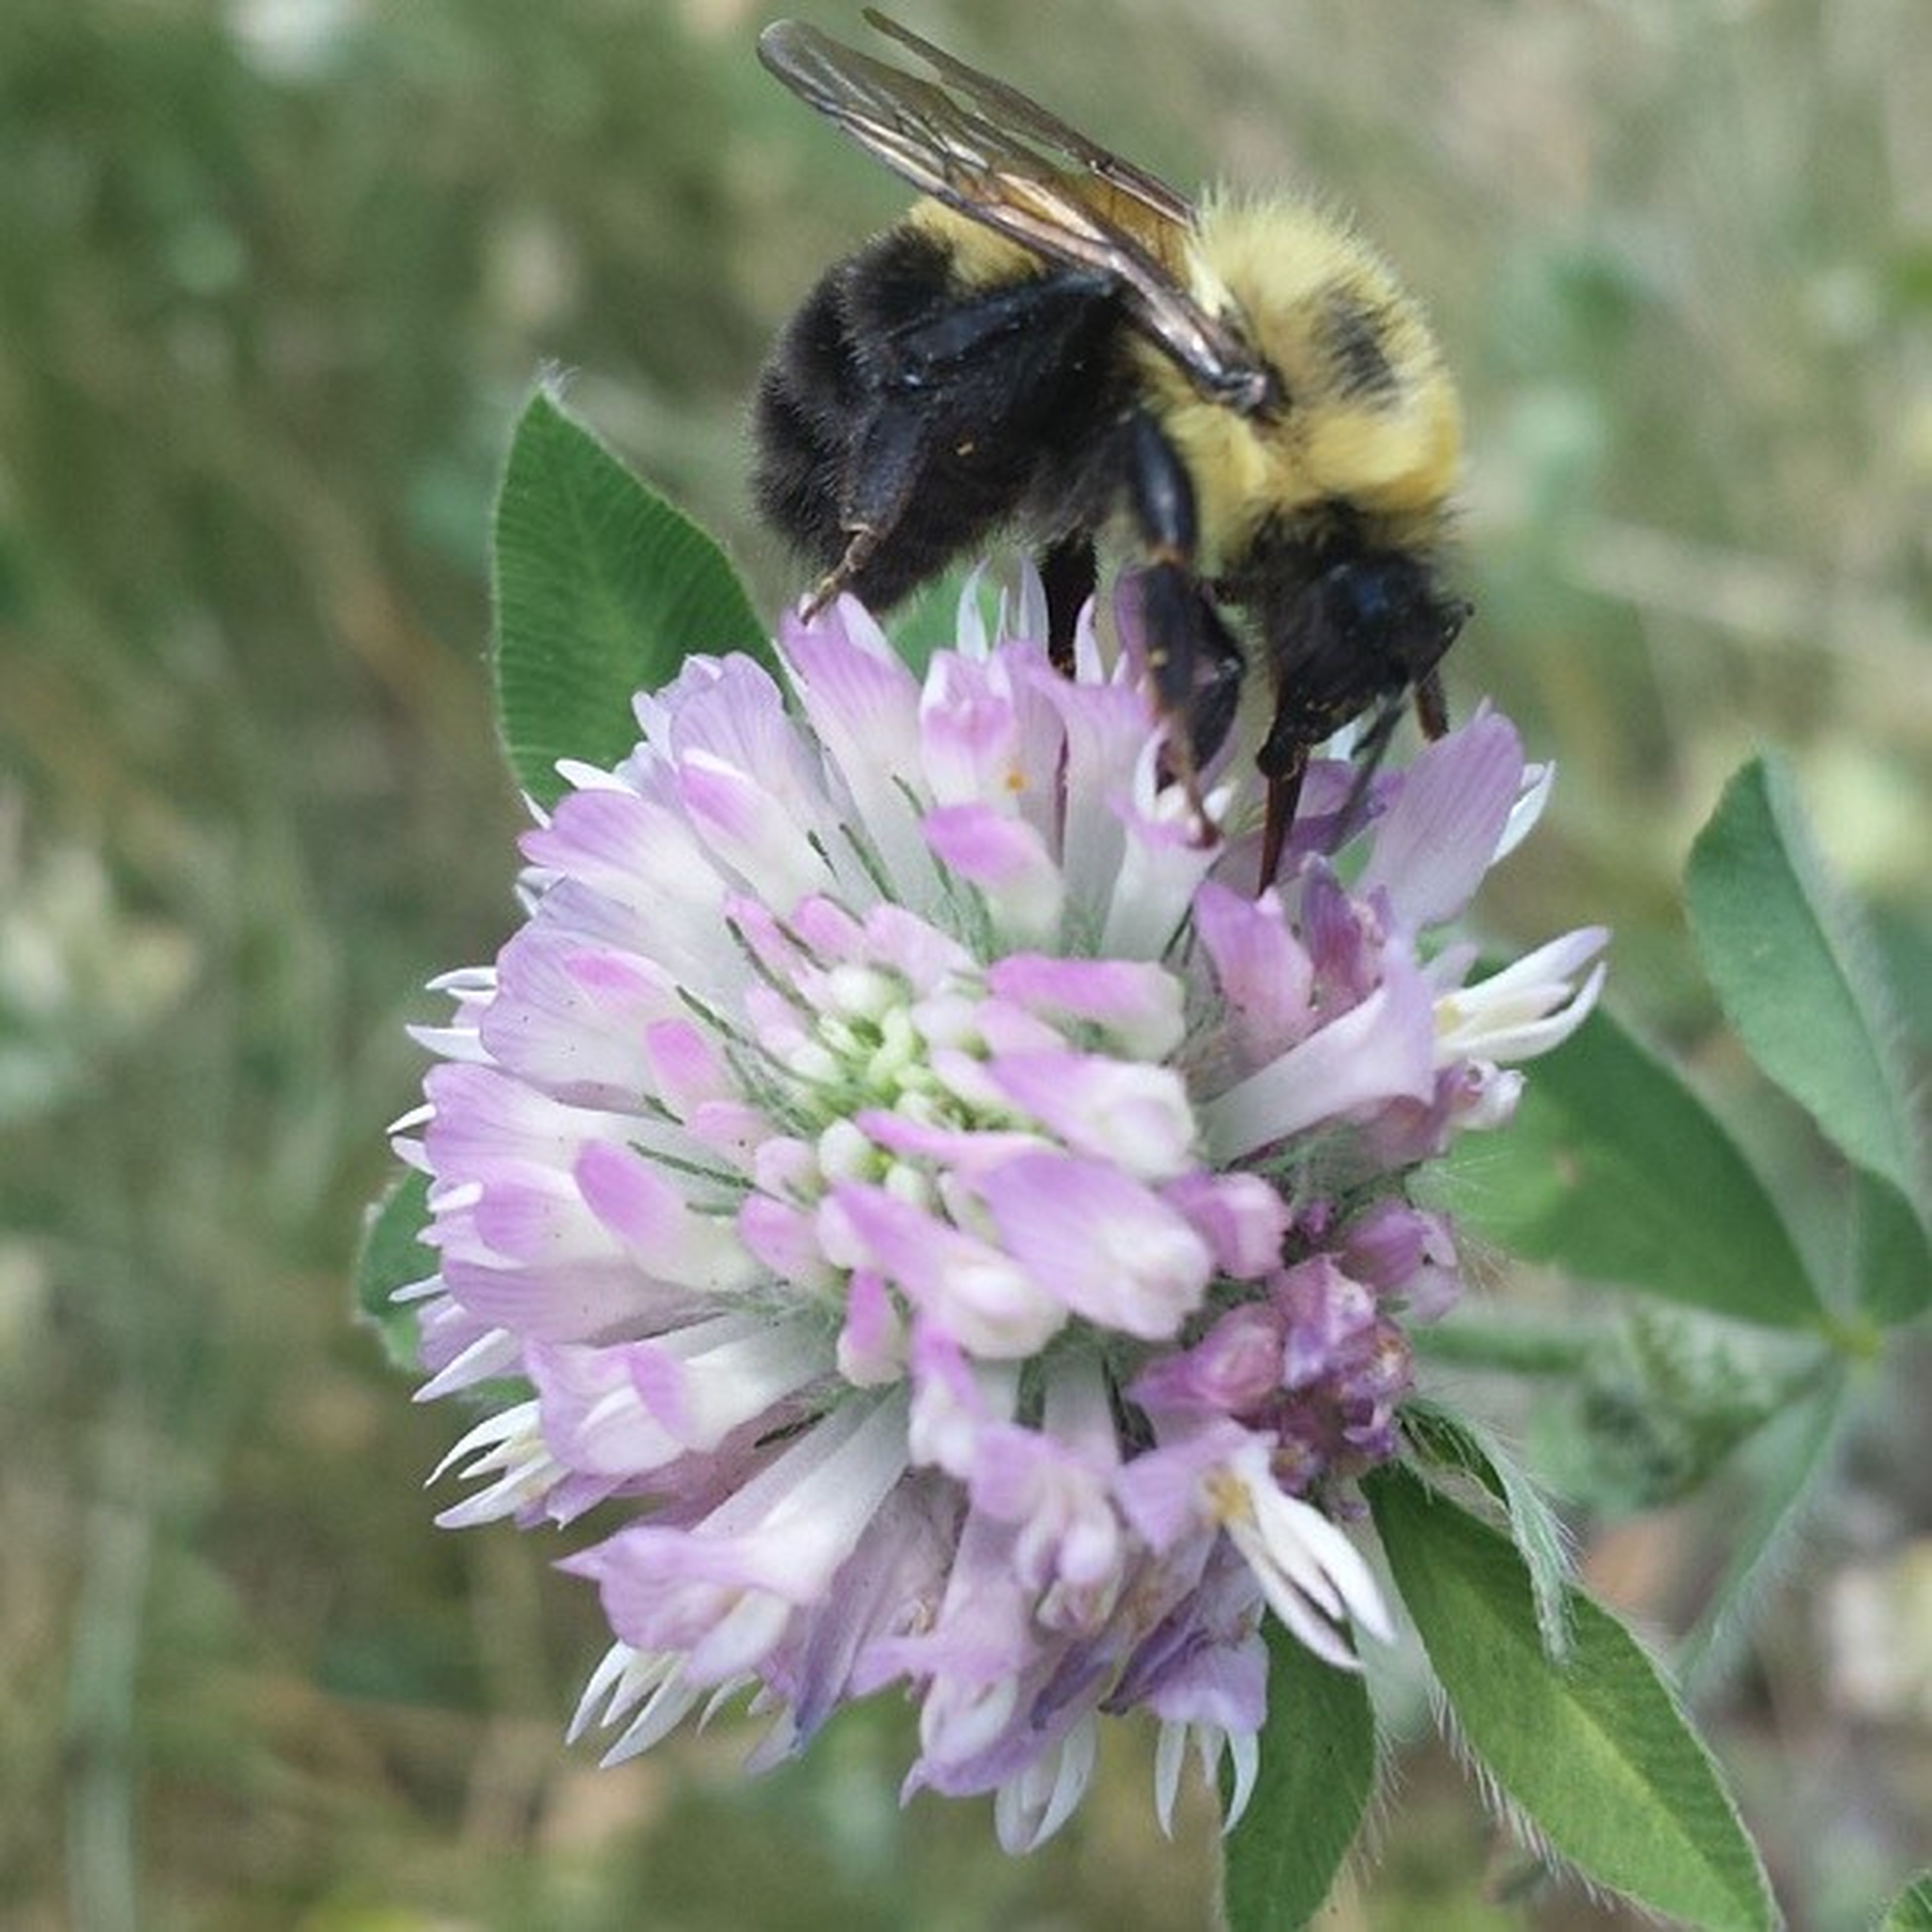 flower, insect, one animal, animal themes, animals in the wild, wildlife, freshness, pollination, petal, fragility, bee, close-up, flower head, focus on foreground, beauty in nature, purple, growth, pink color, nature, symbiotic relationship